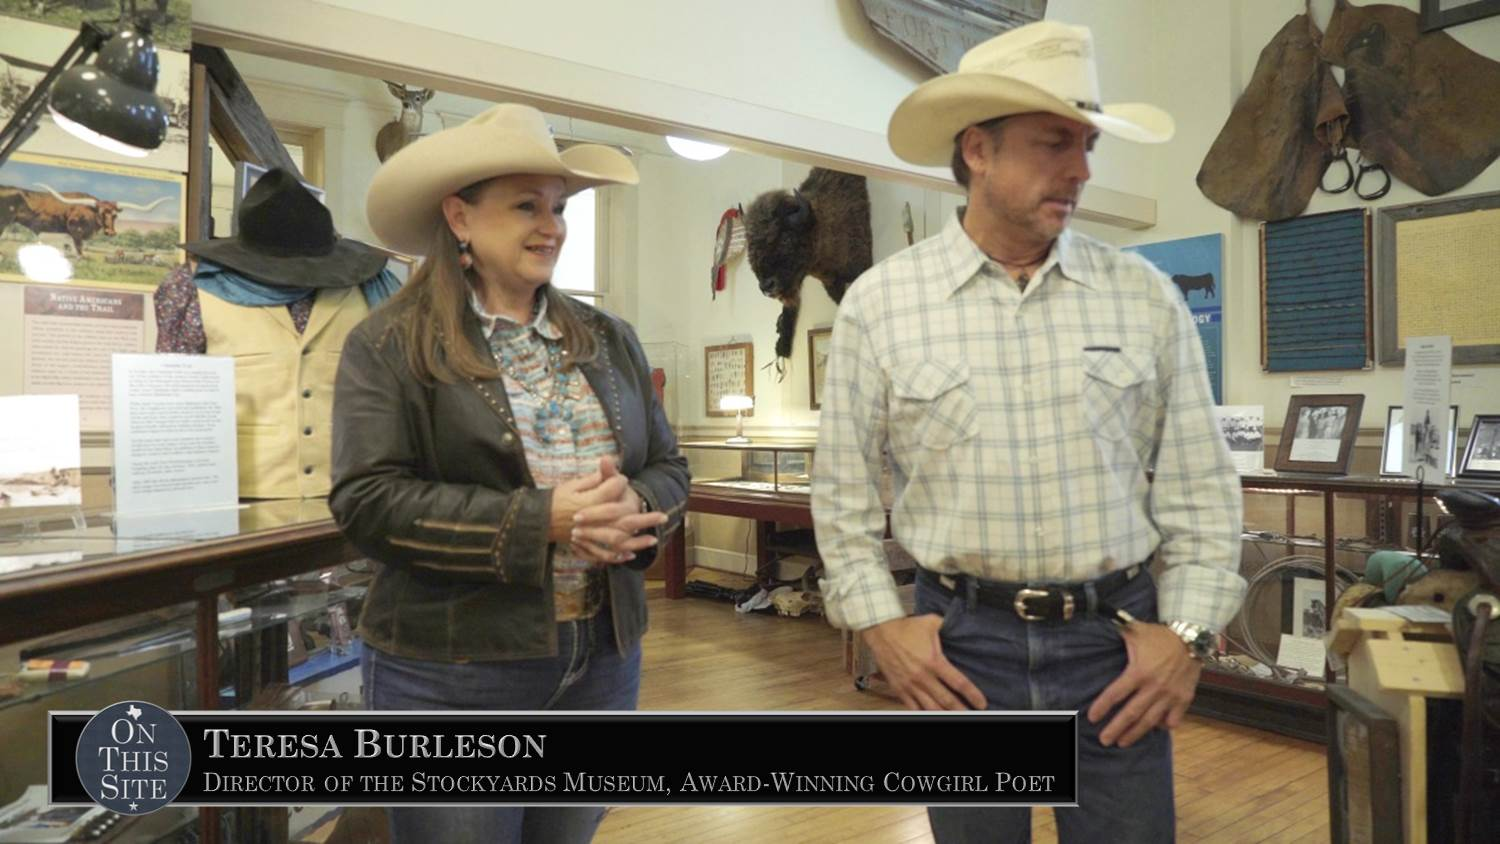 Teresa Burleson - Director of Stockyards Museum and Cowgirl Poet